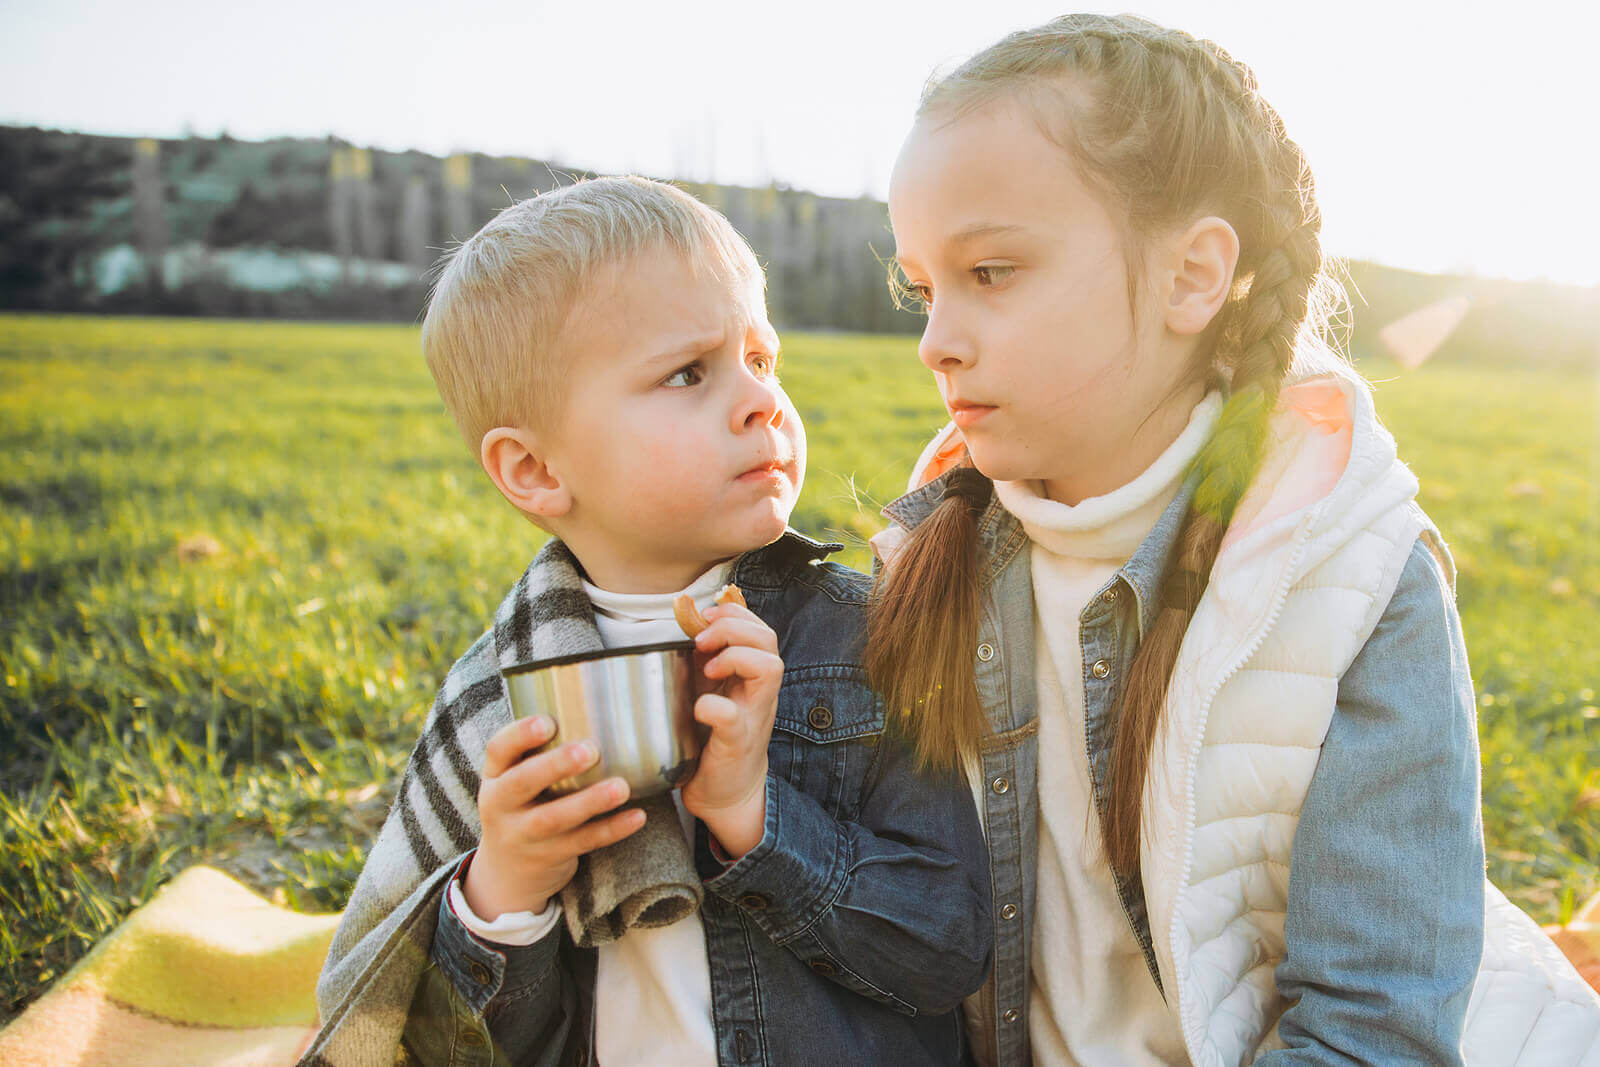 If Your Kids Are Always Fighting, Try These Discipline Tools